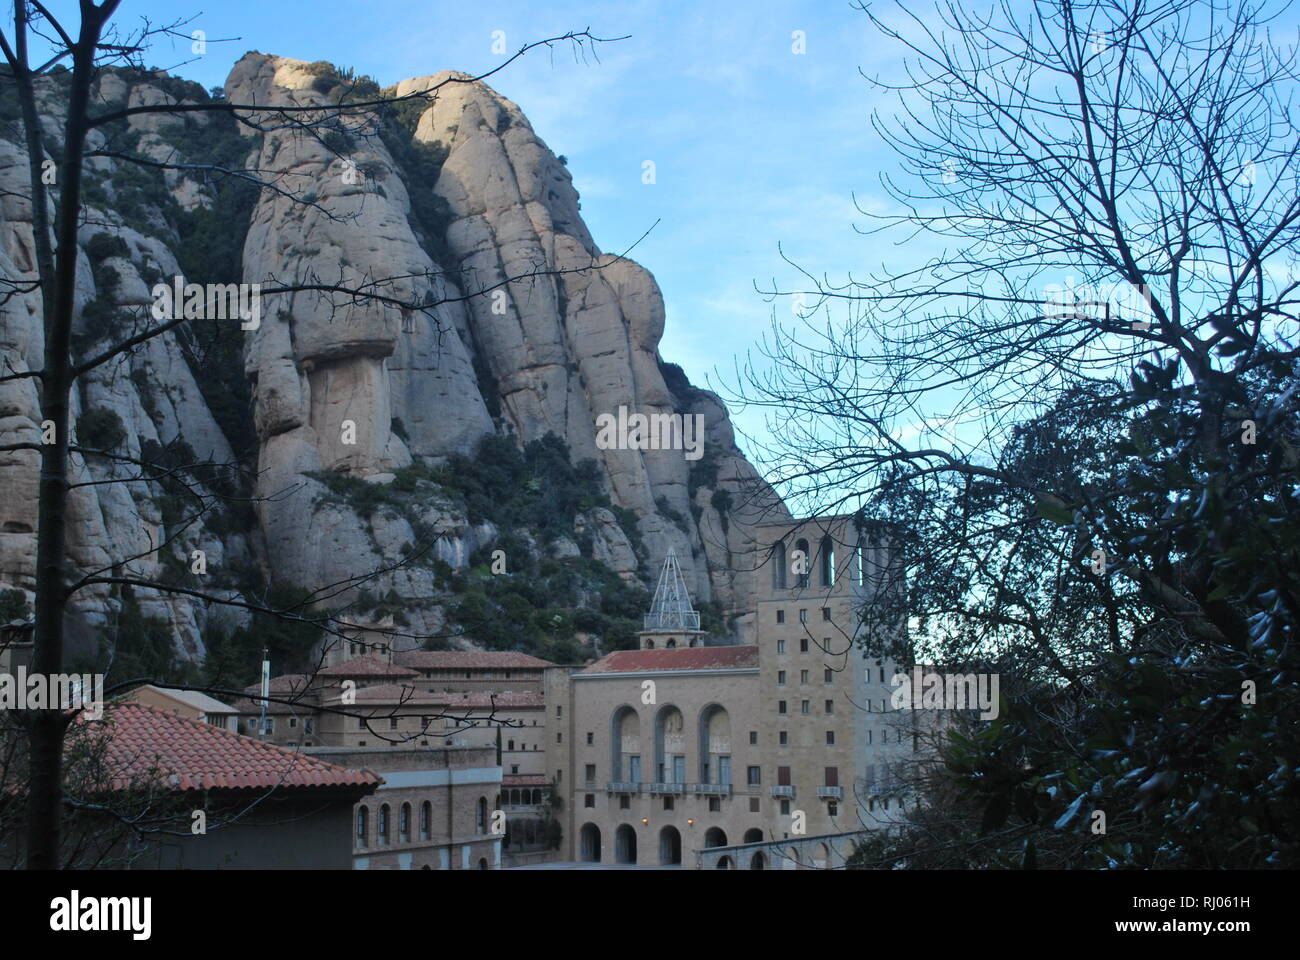 Santa Maria de Montserrat Abbey and Monastery on the side of the 'serrated mountain' in Catalonia, Spain - Stock Image